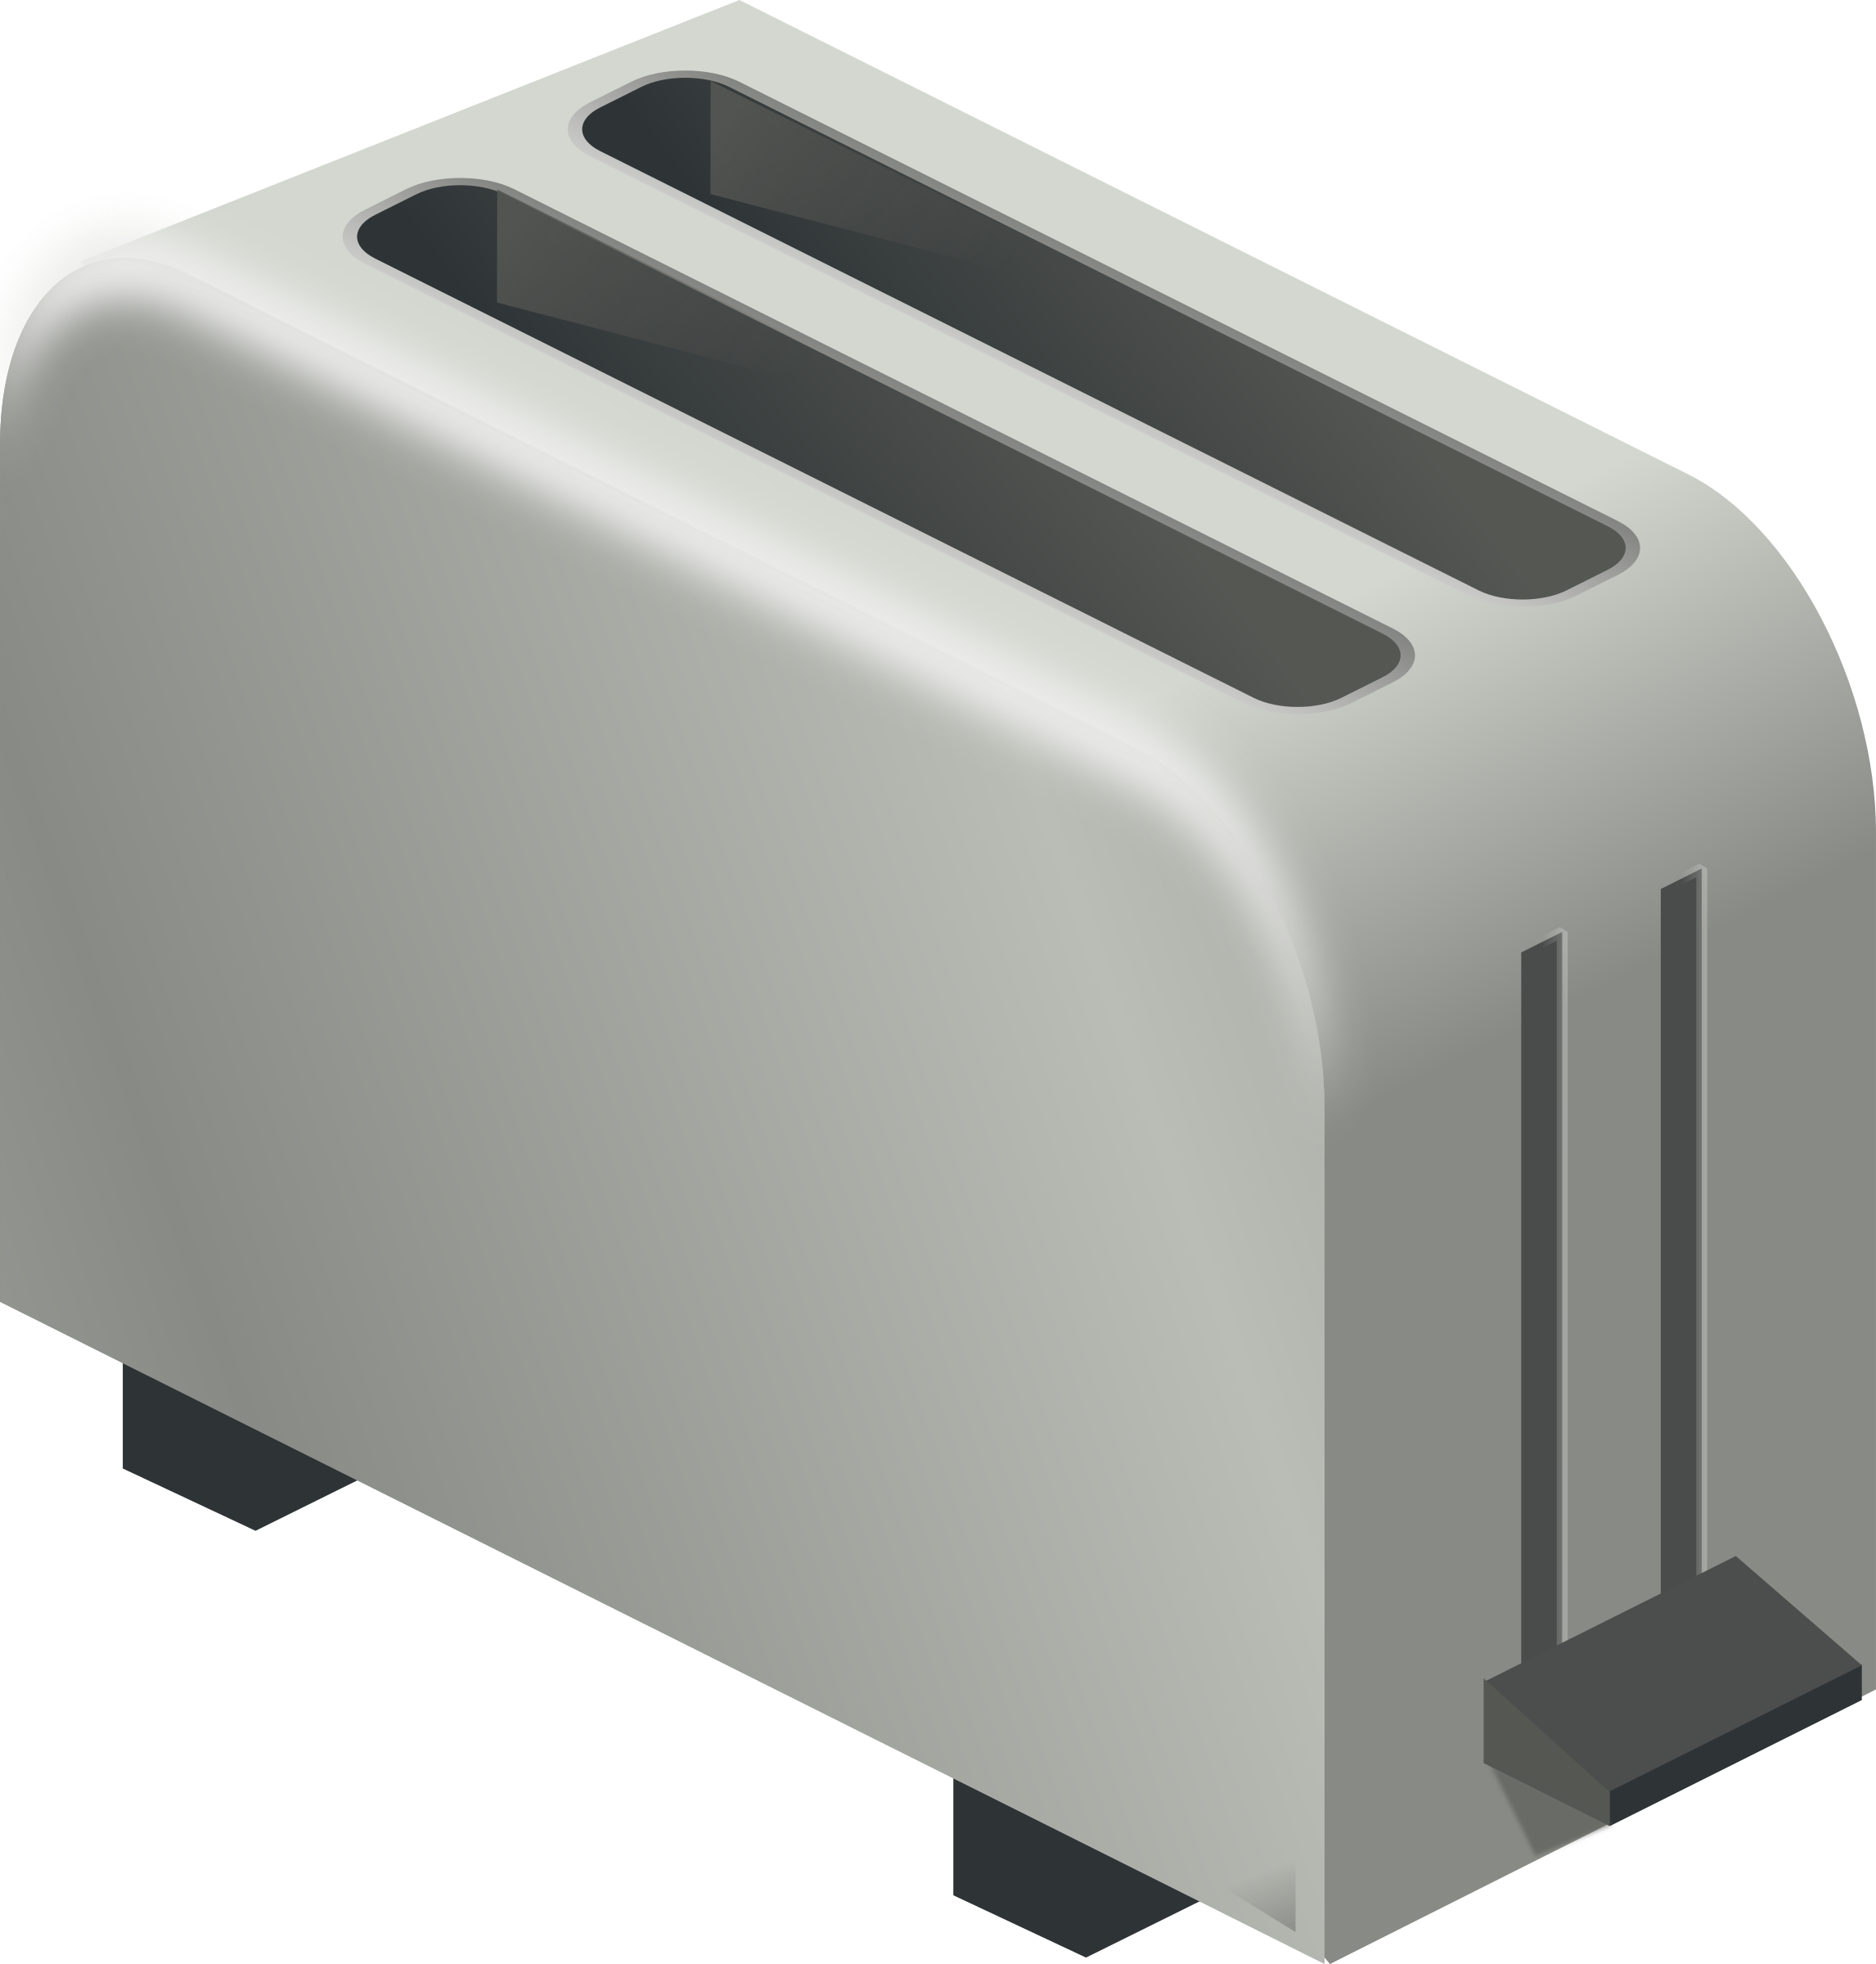 isometric toaster by rg1024